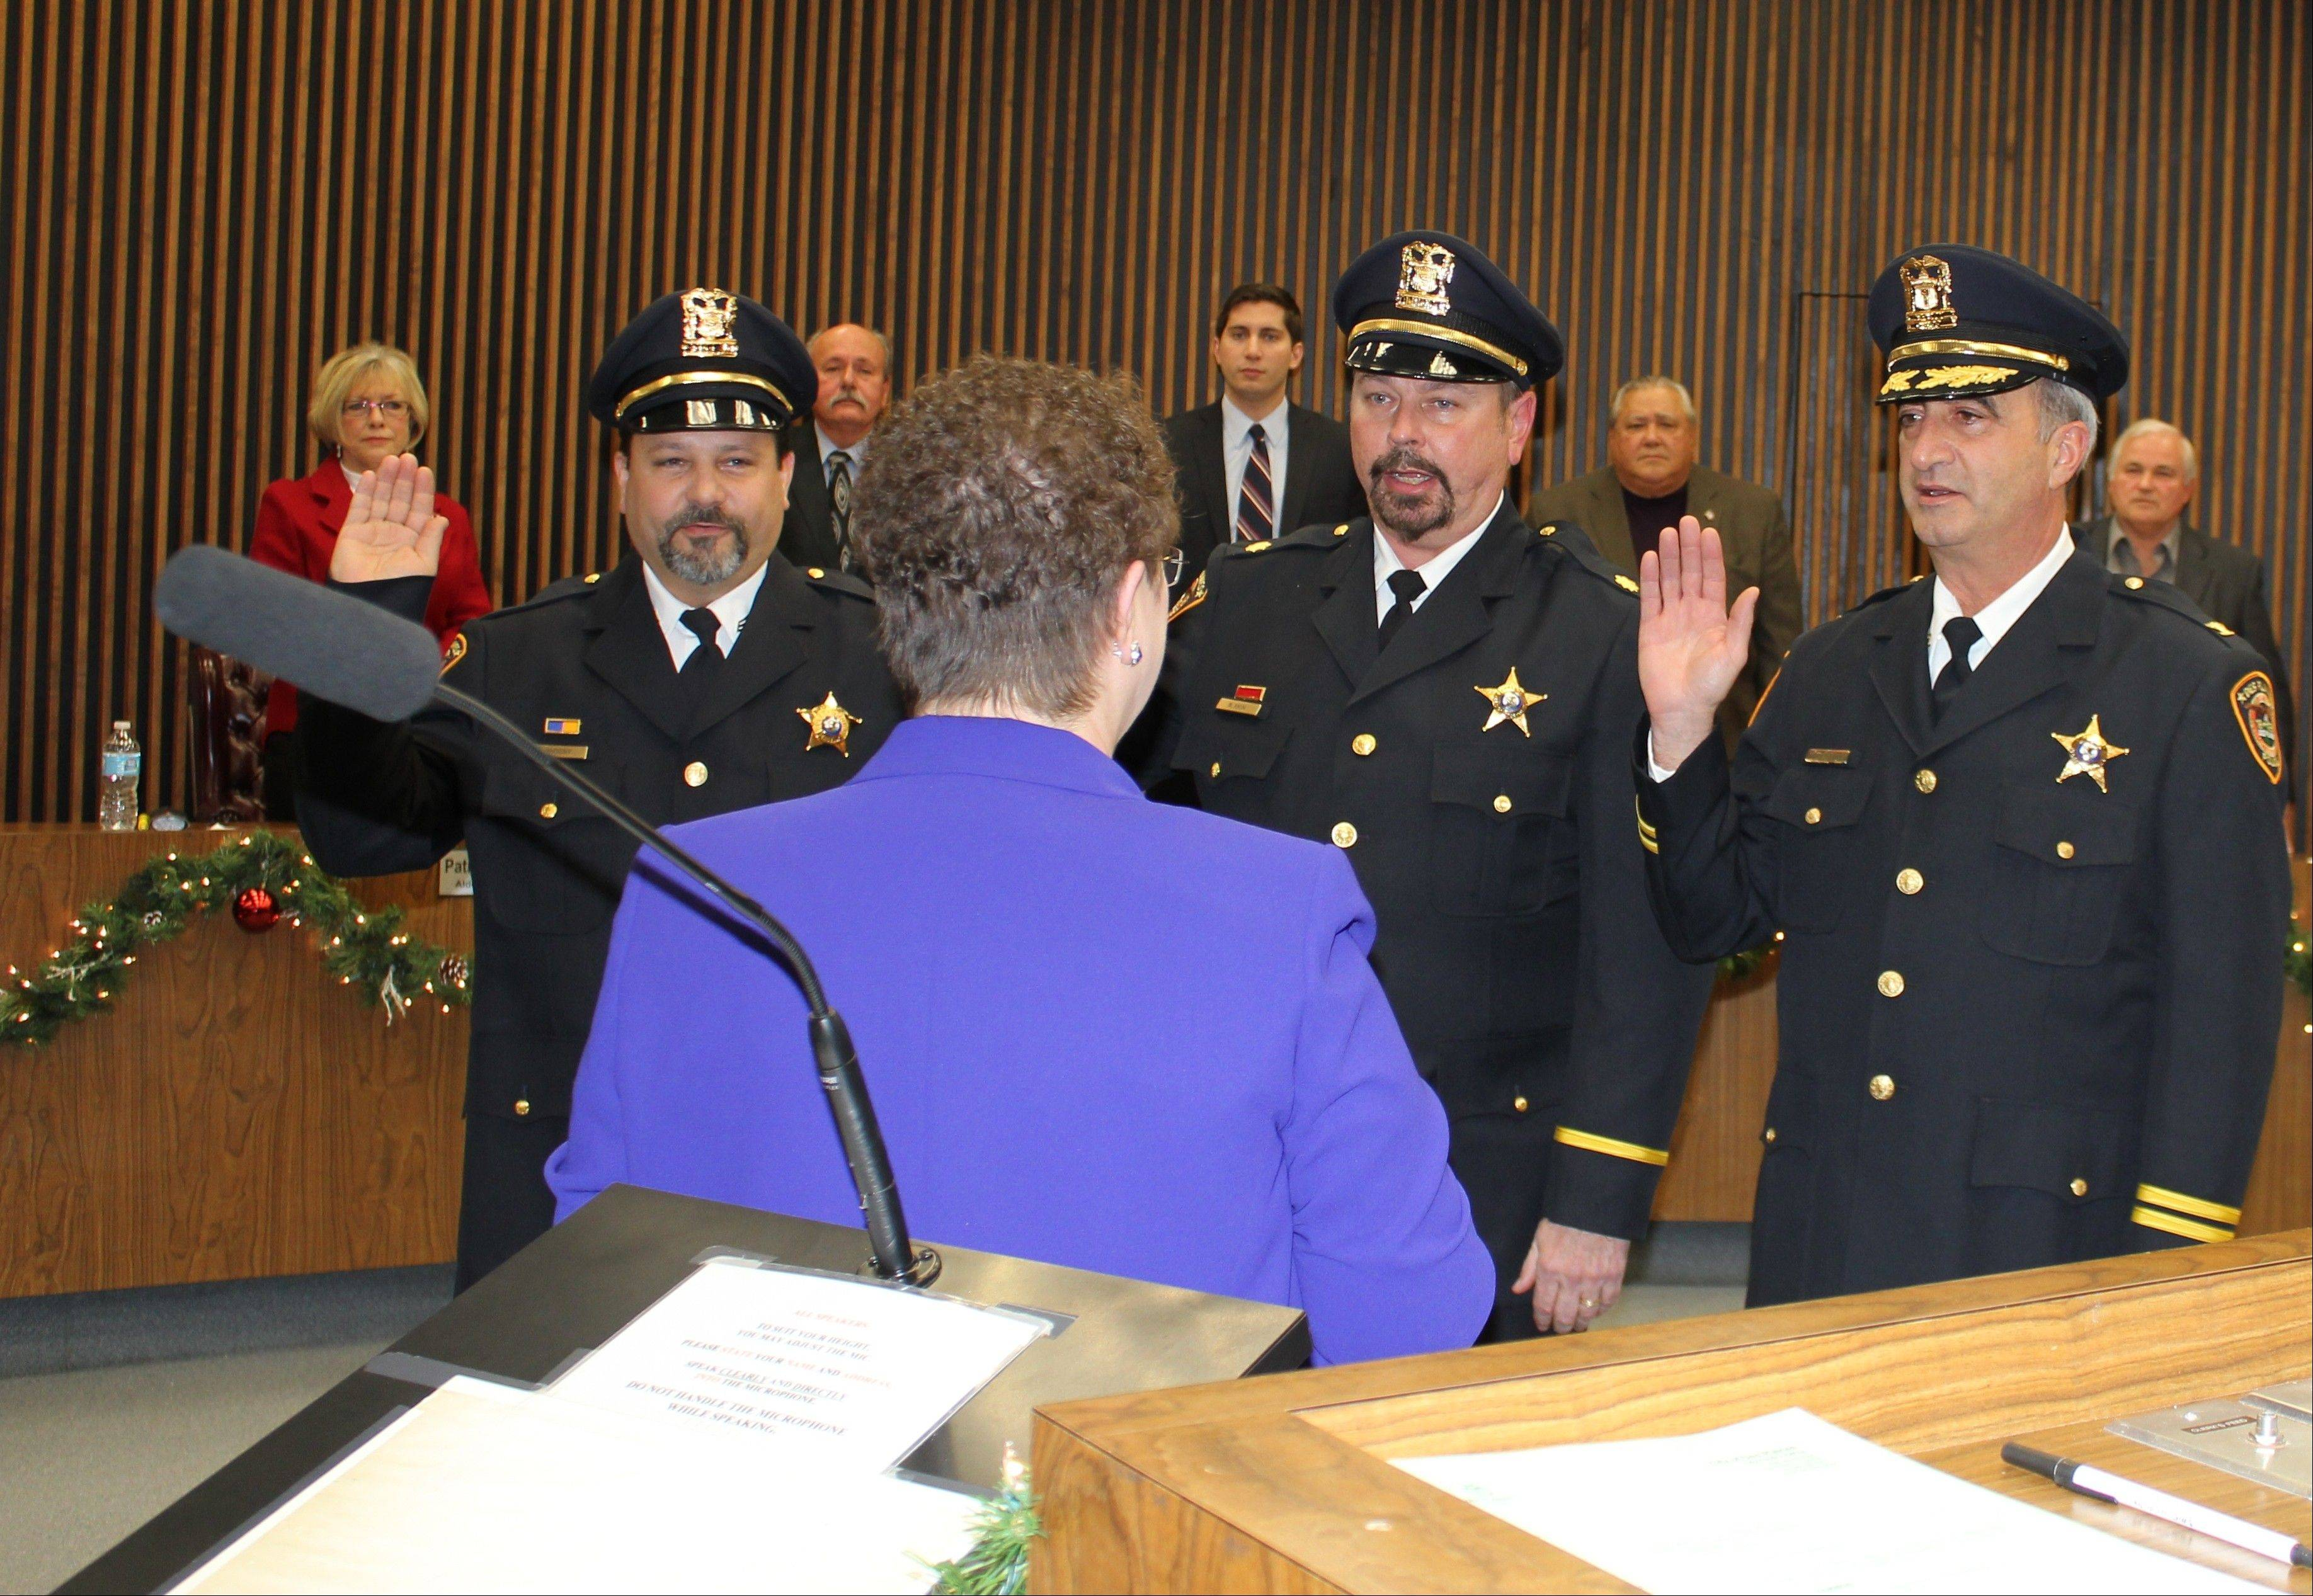 From left, Detective Jeffrey Jacoby, Sgt. Randy Akin, and Cmdr. Nicholas Treantafeles are sworn into their new positions of sergeant, commander, and deputy chief, respectively, with the Des Plaines Police Department by City Clerk Gloria Ludwig during Monday night's City Council meeting.